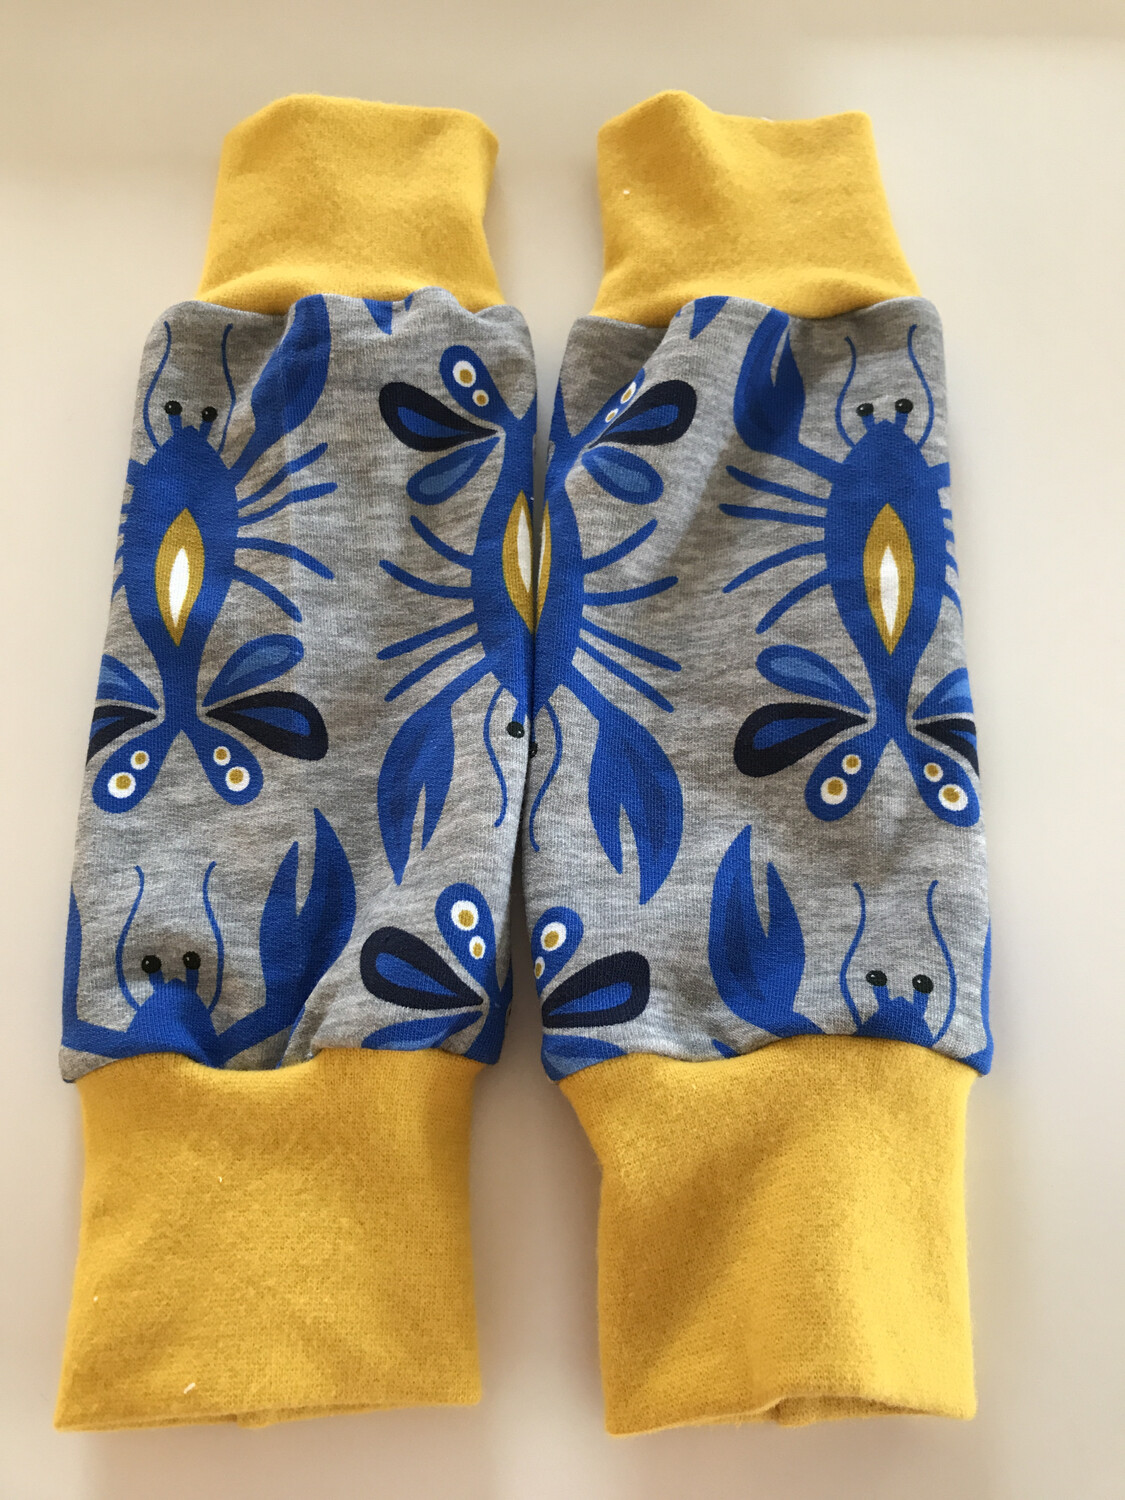 Blue Lobster Baby Leg Warmers - alternative cuffs available